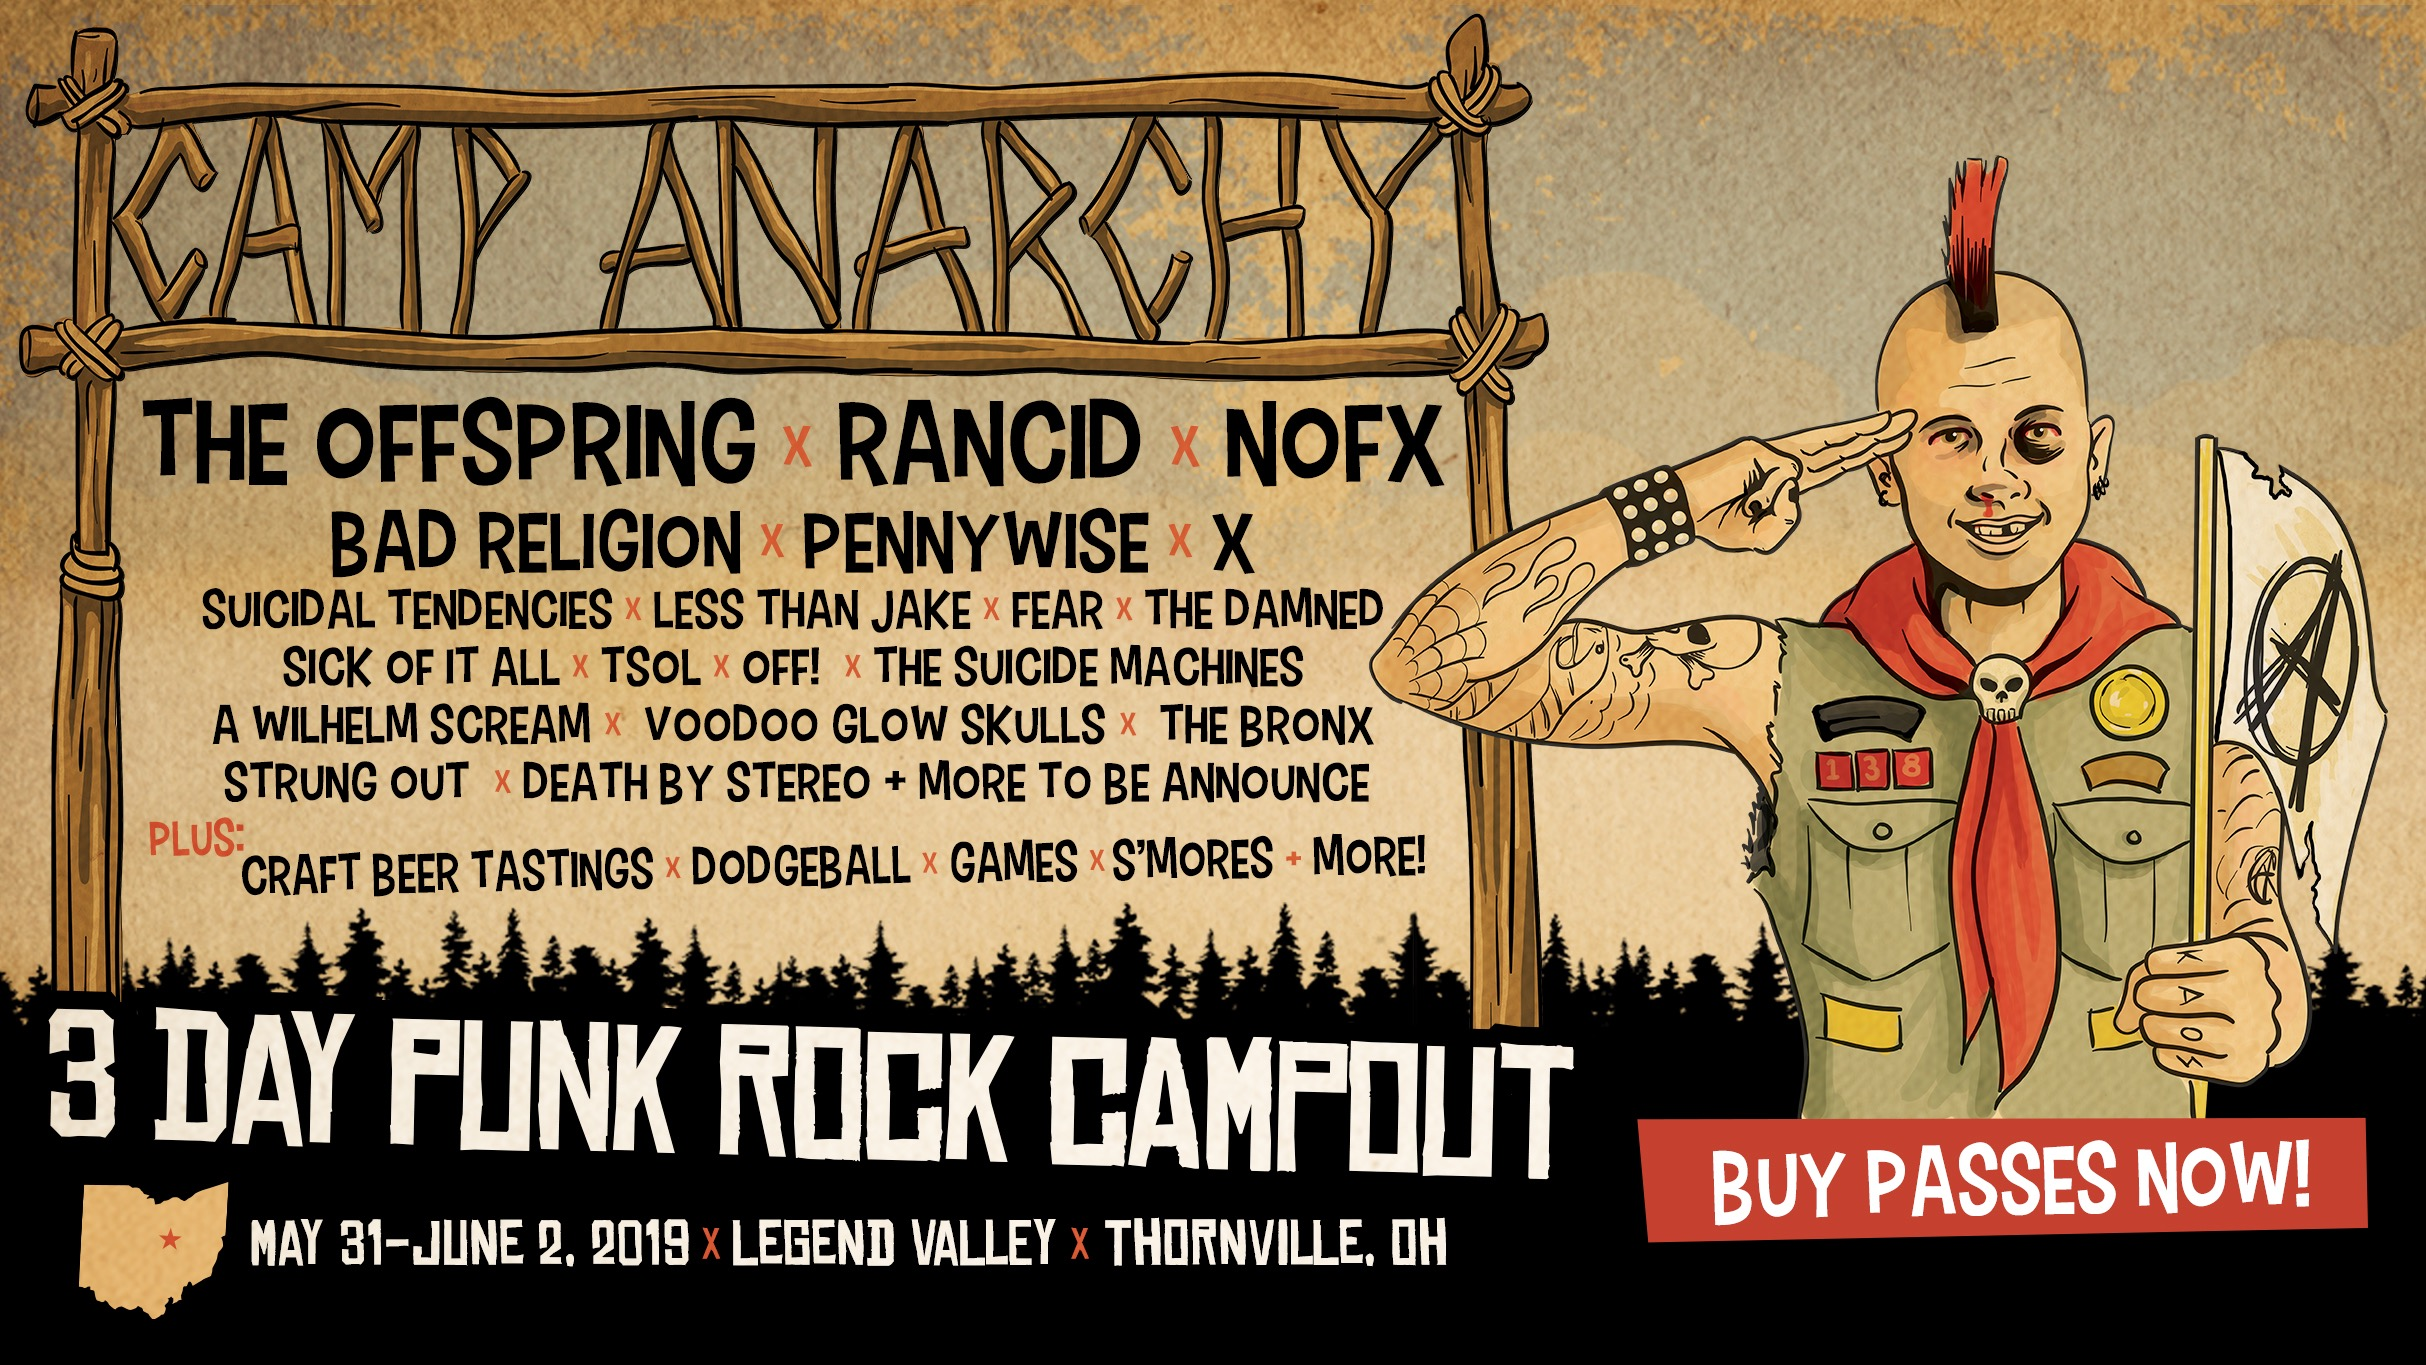 Check Out Camp Anarchy 2019 Coverage-(Photos+Review